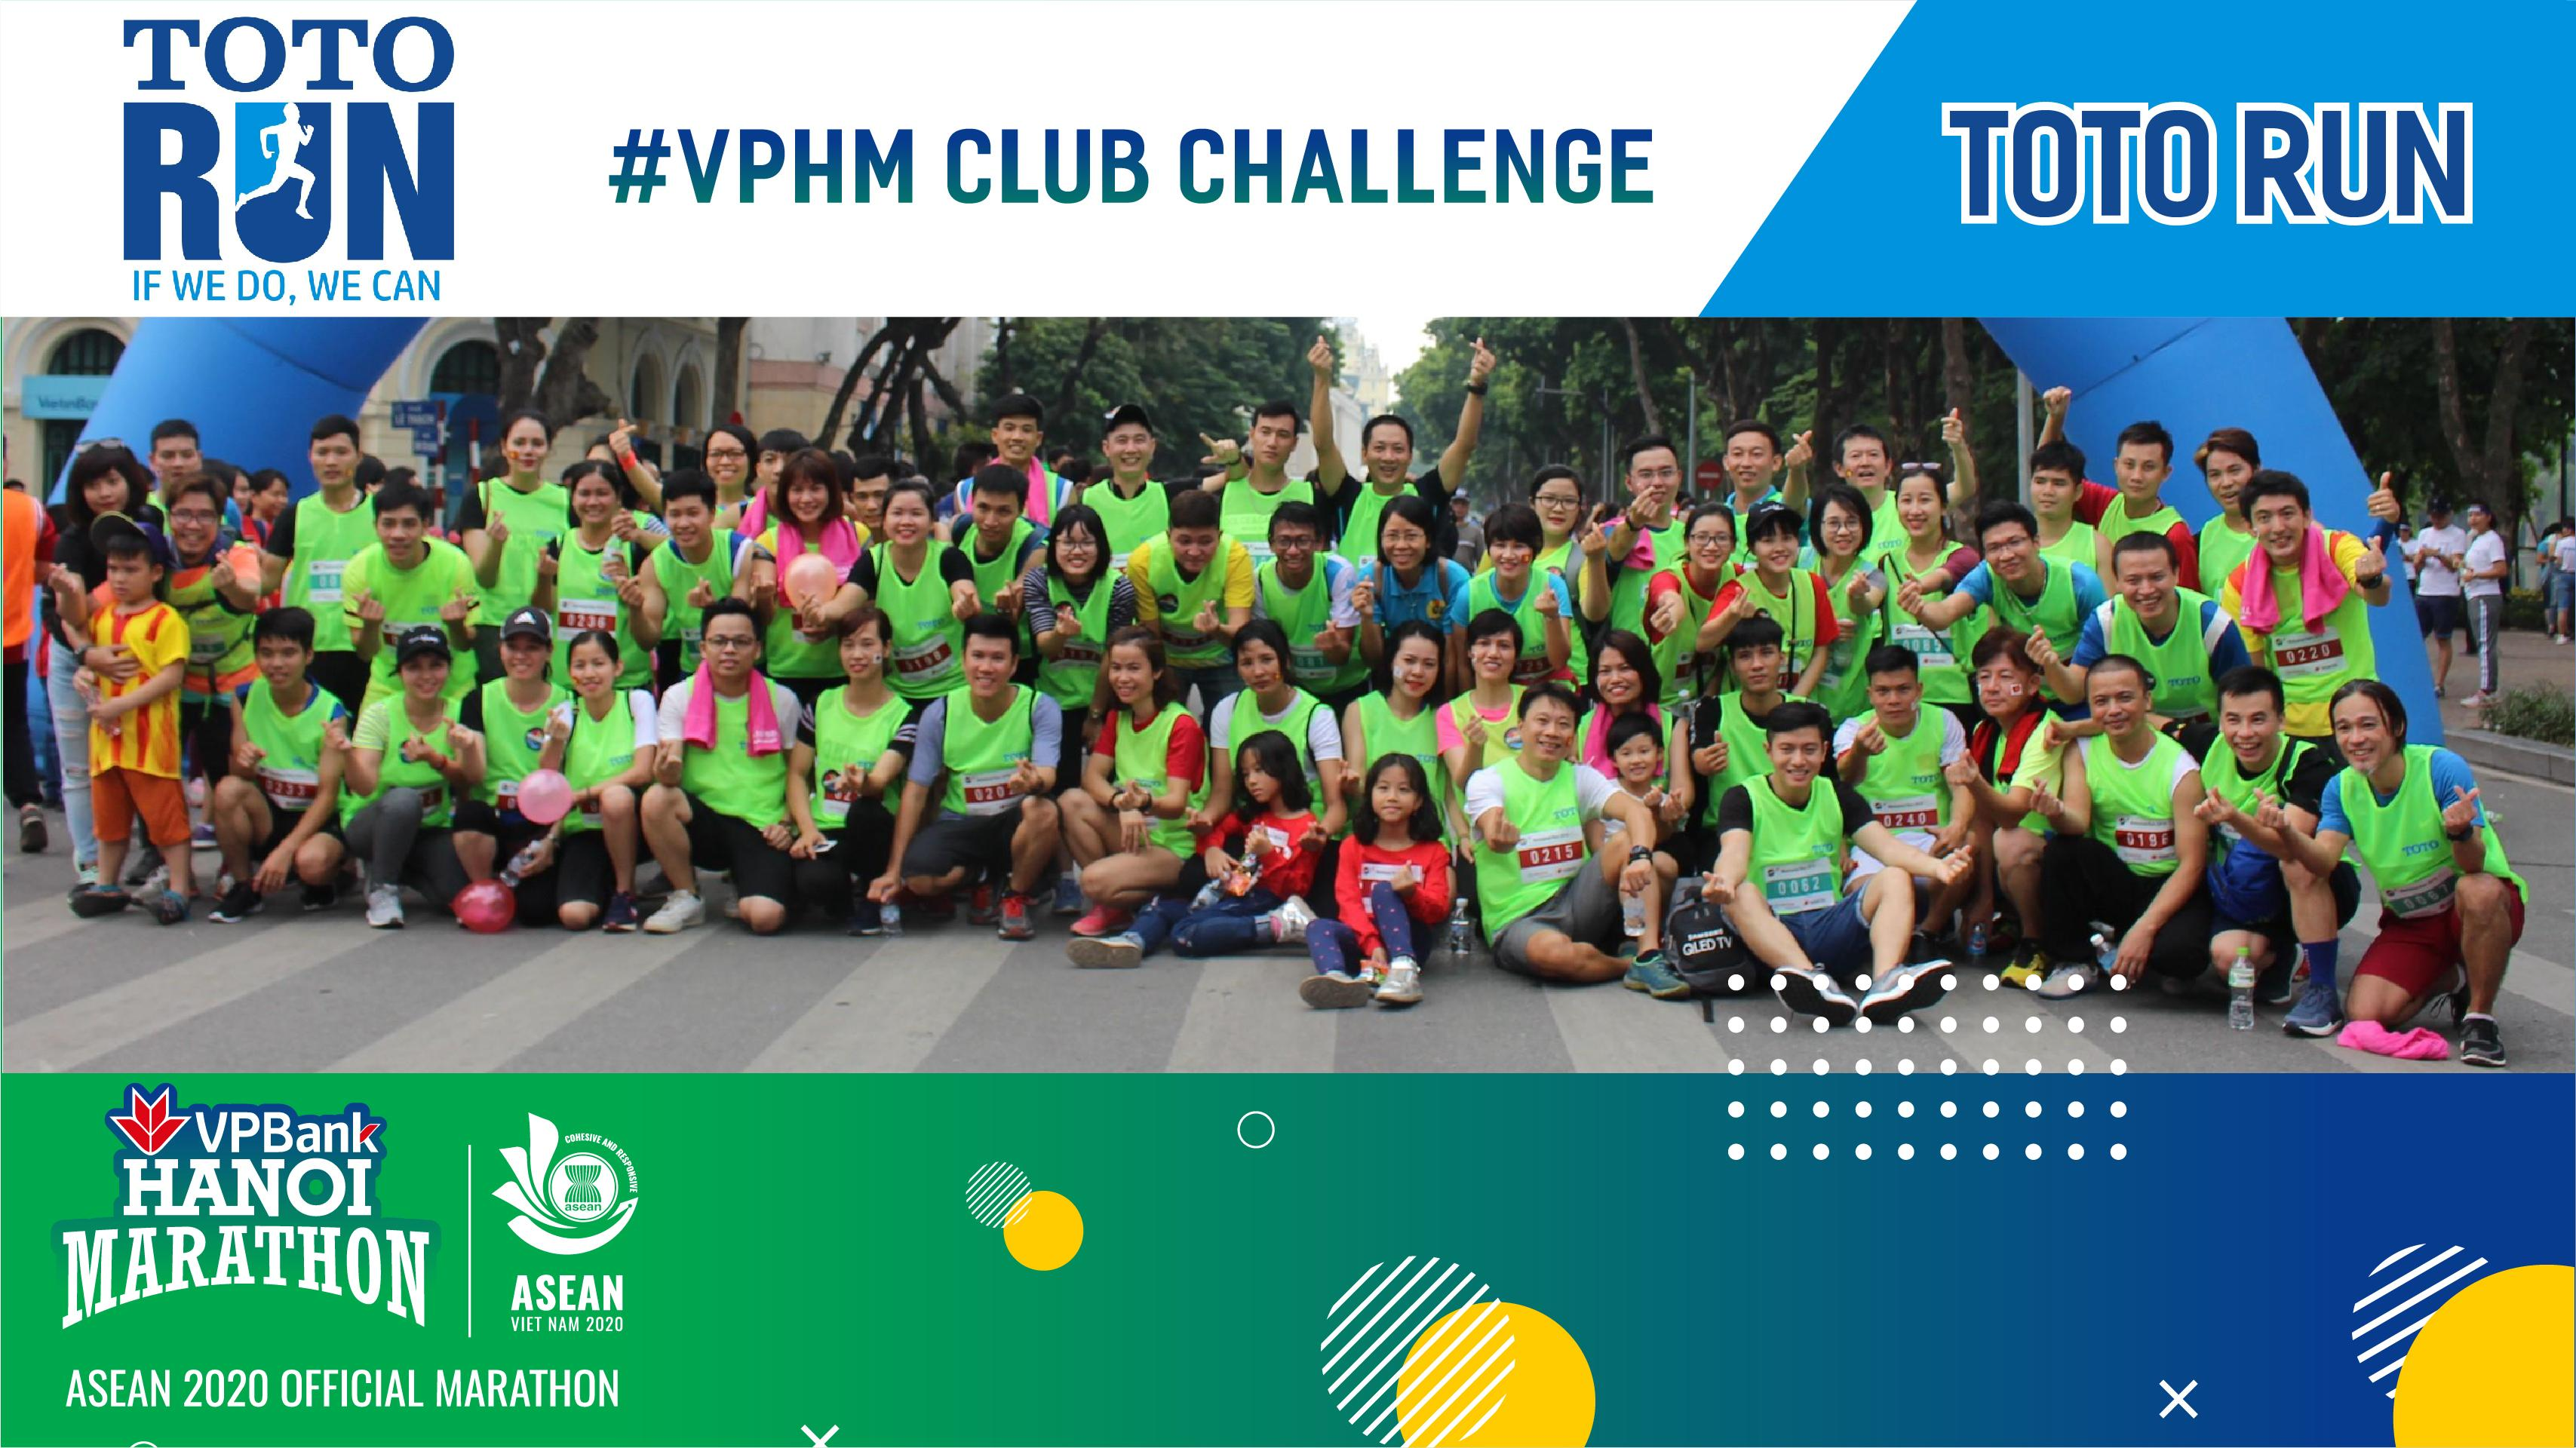 VPHM Club Challenge - TOTO Runners and Friends